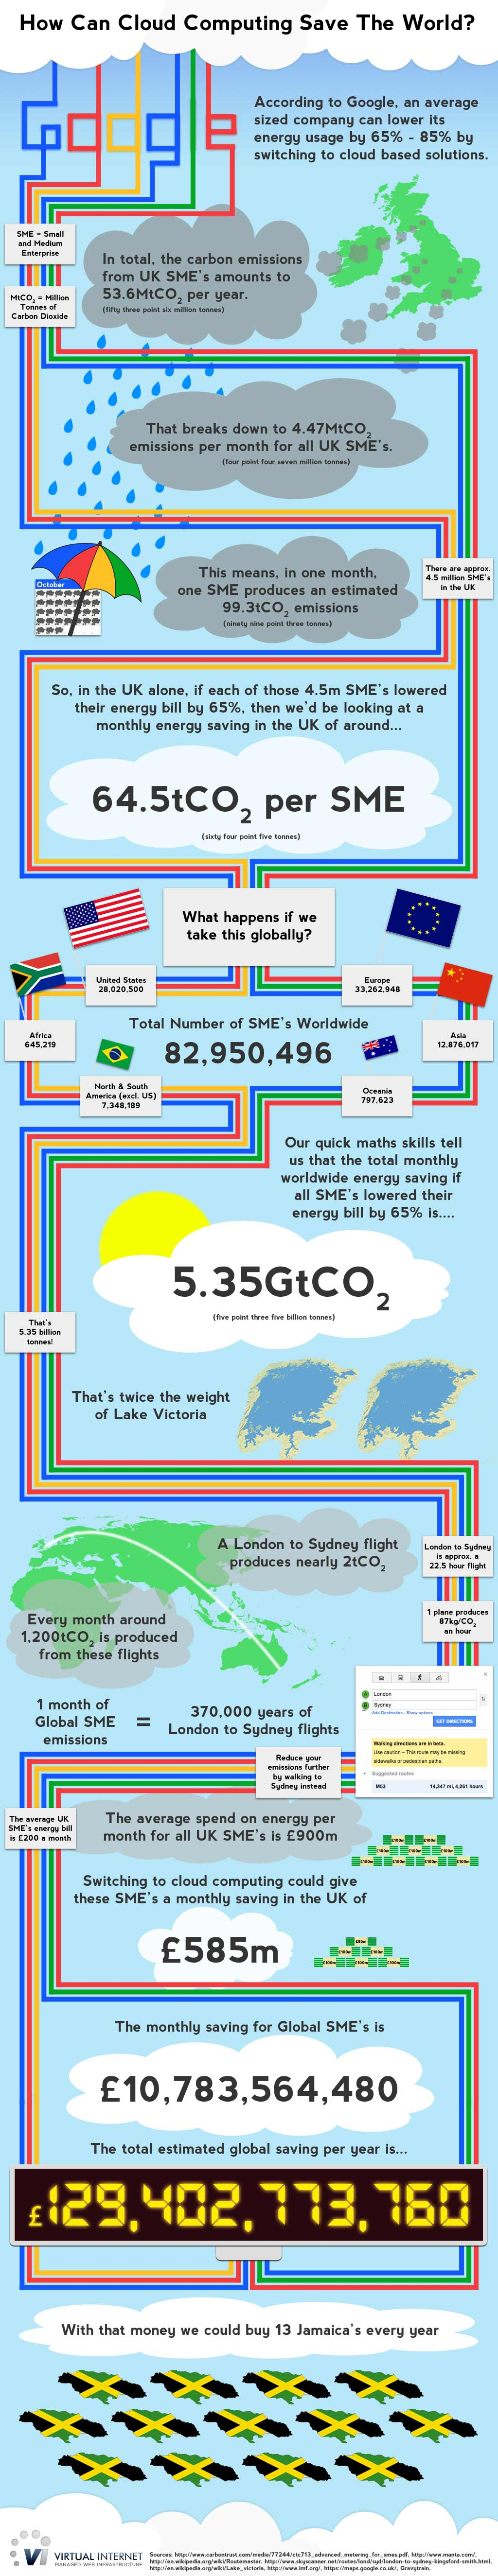 How Cloud Computing Can Save The World Infographic